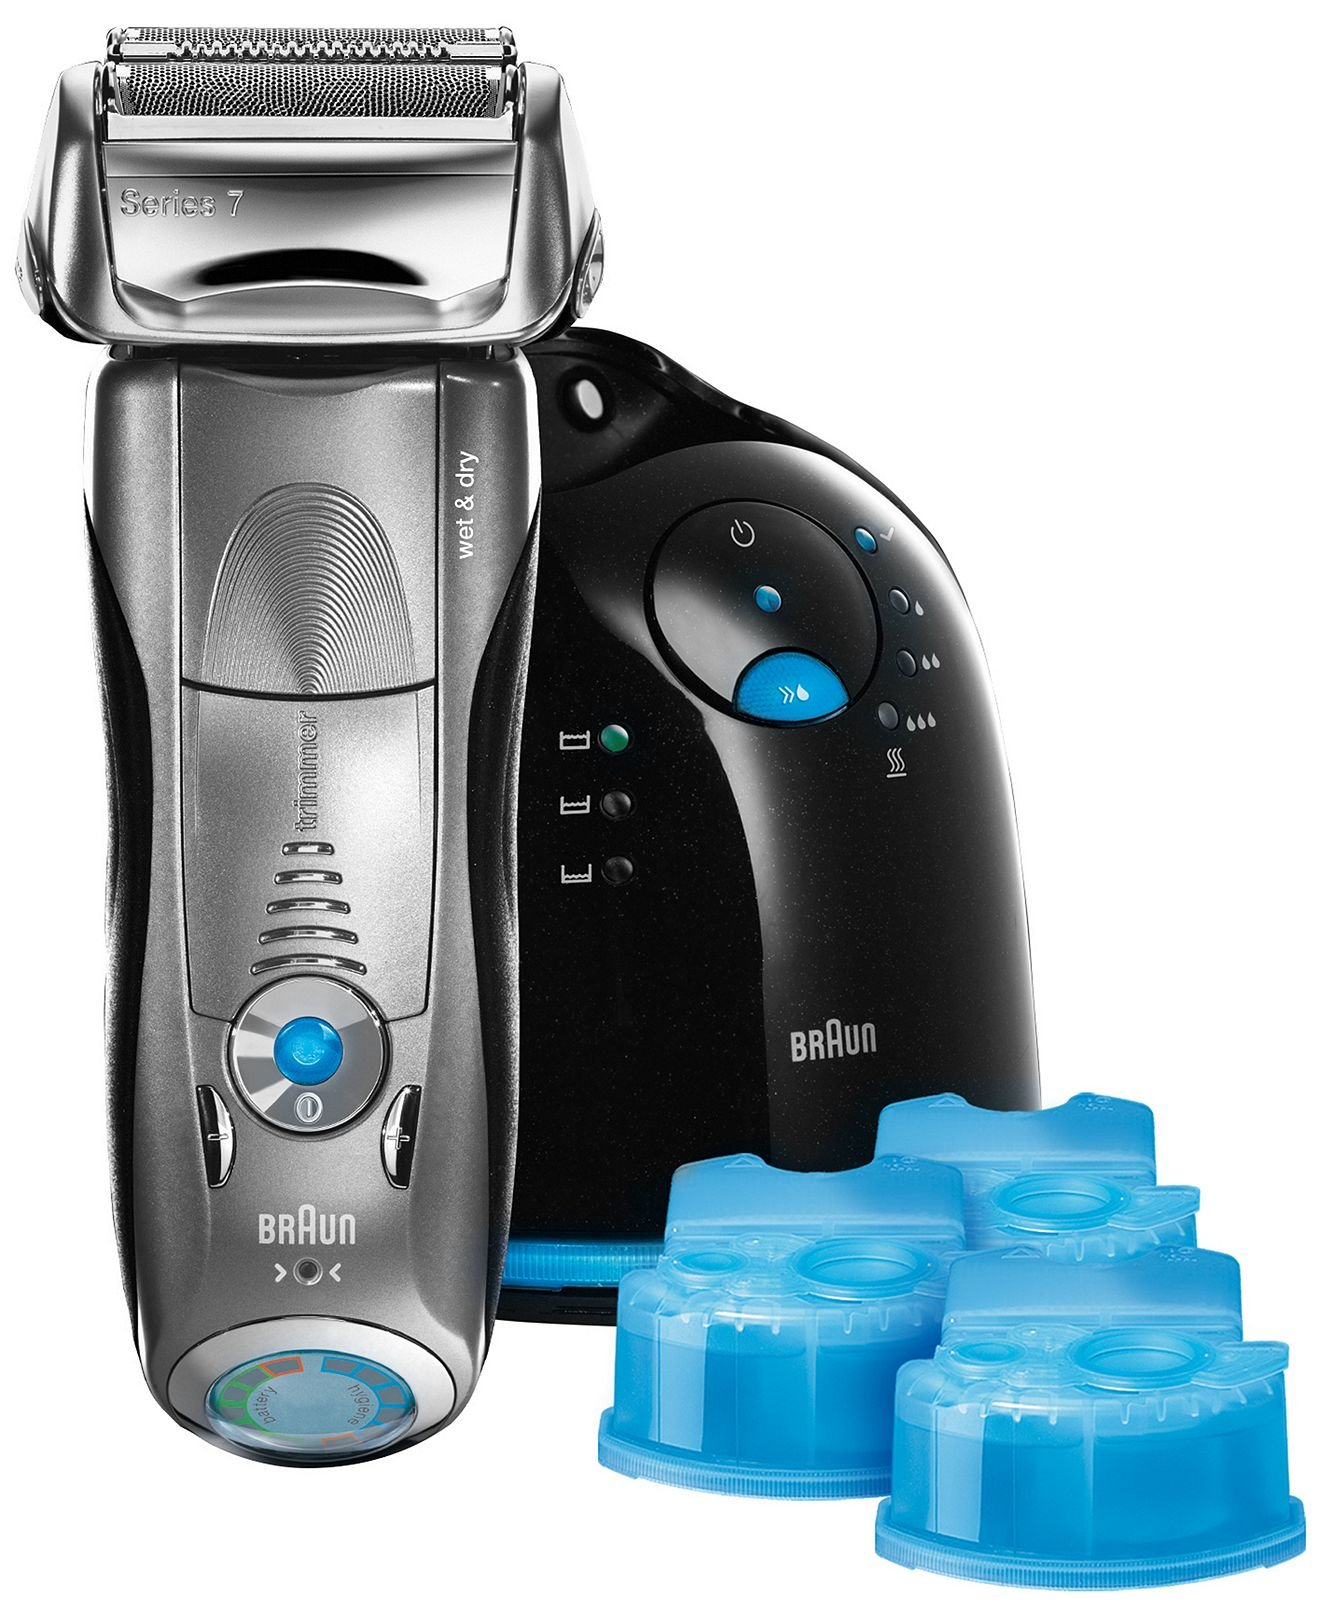 braun 799cc 6 series 7 wet dry shaver gosale price. Black Bedroom Furniture Sets. Home Design Ideas